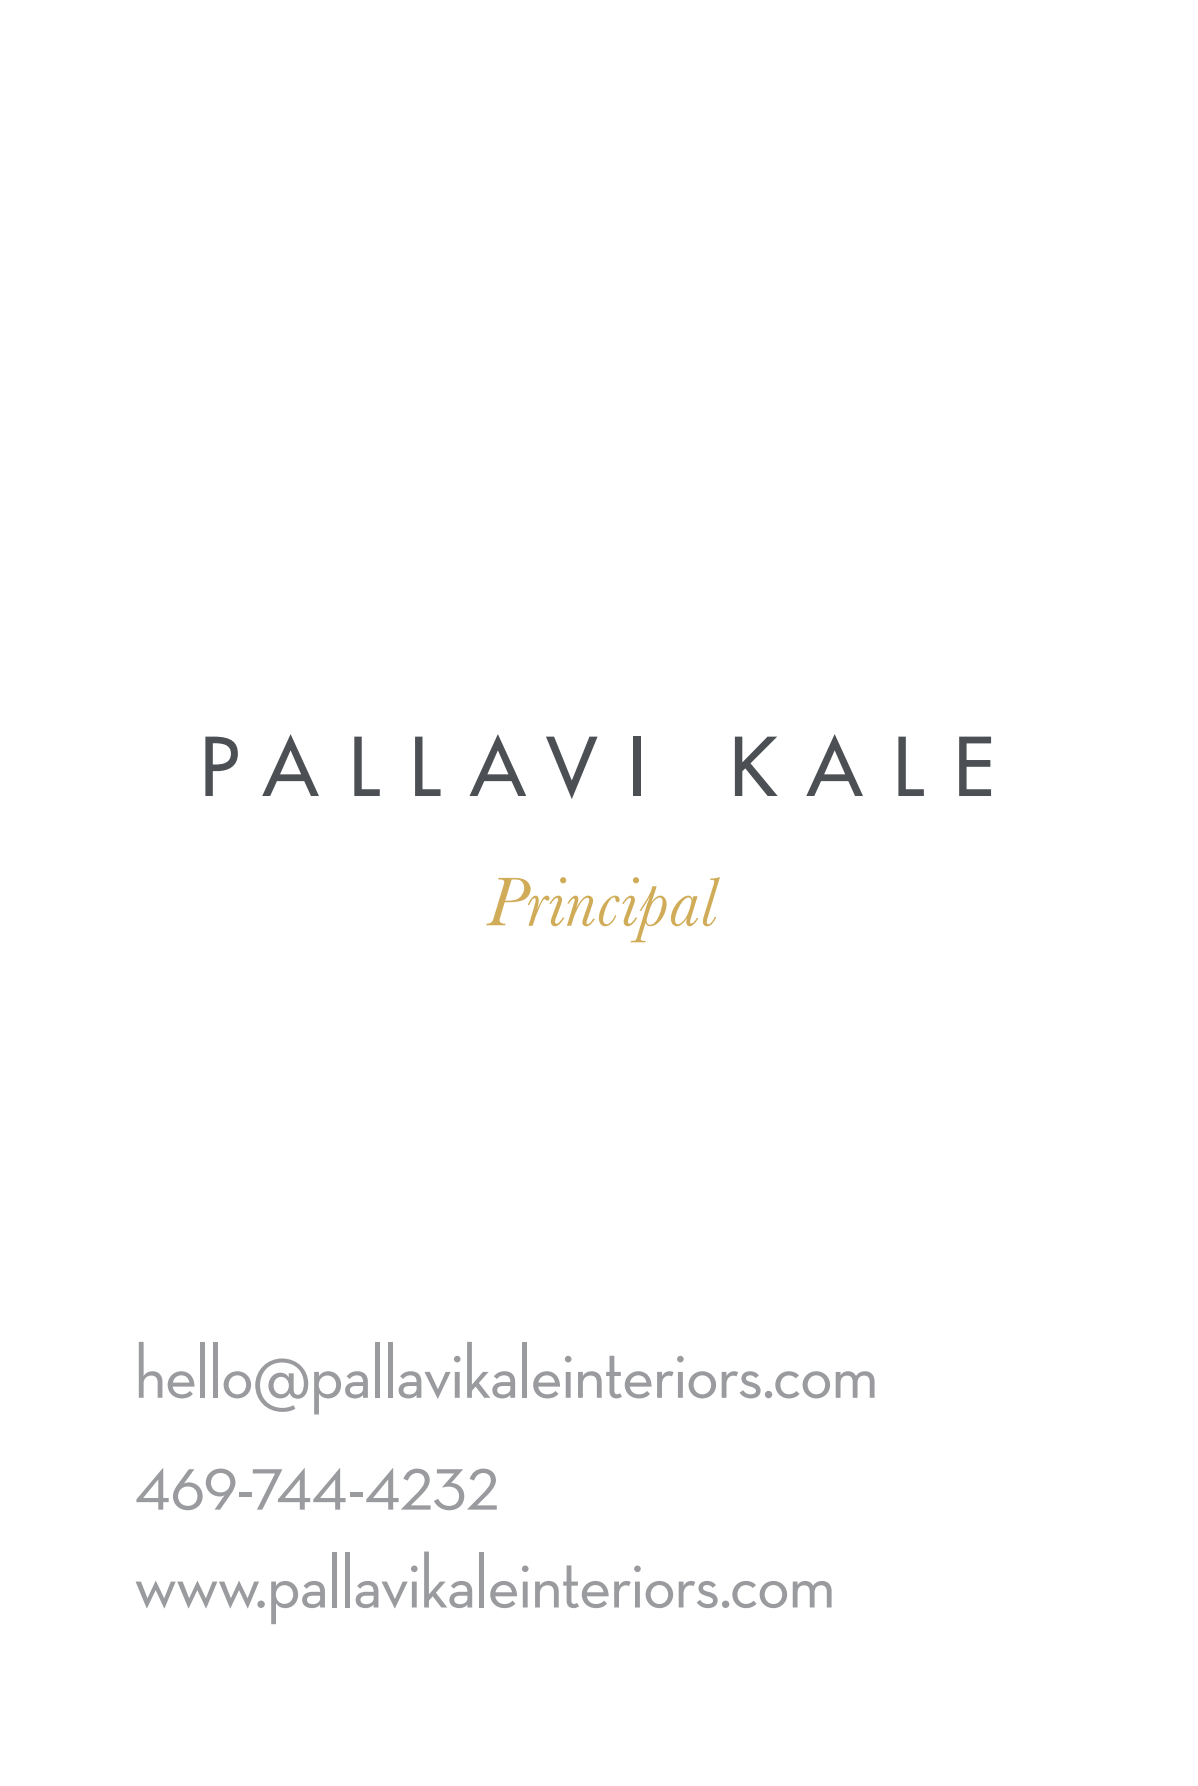 Business card design for Pallavi kale interior